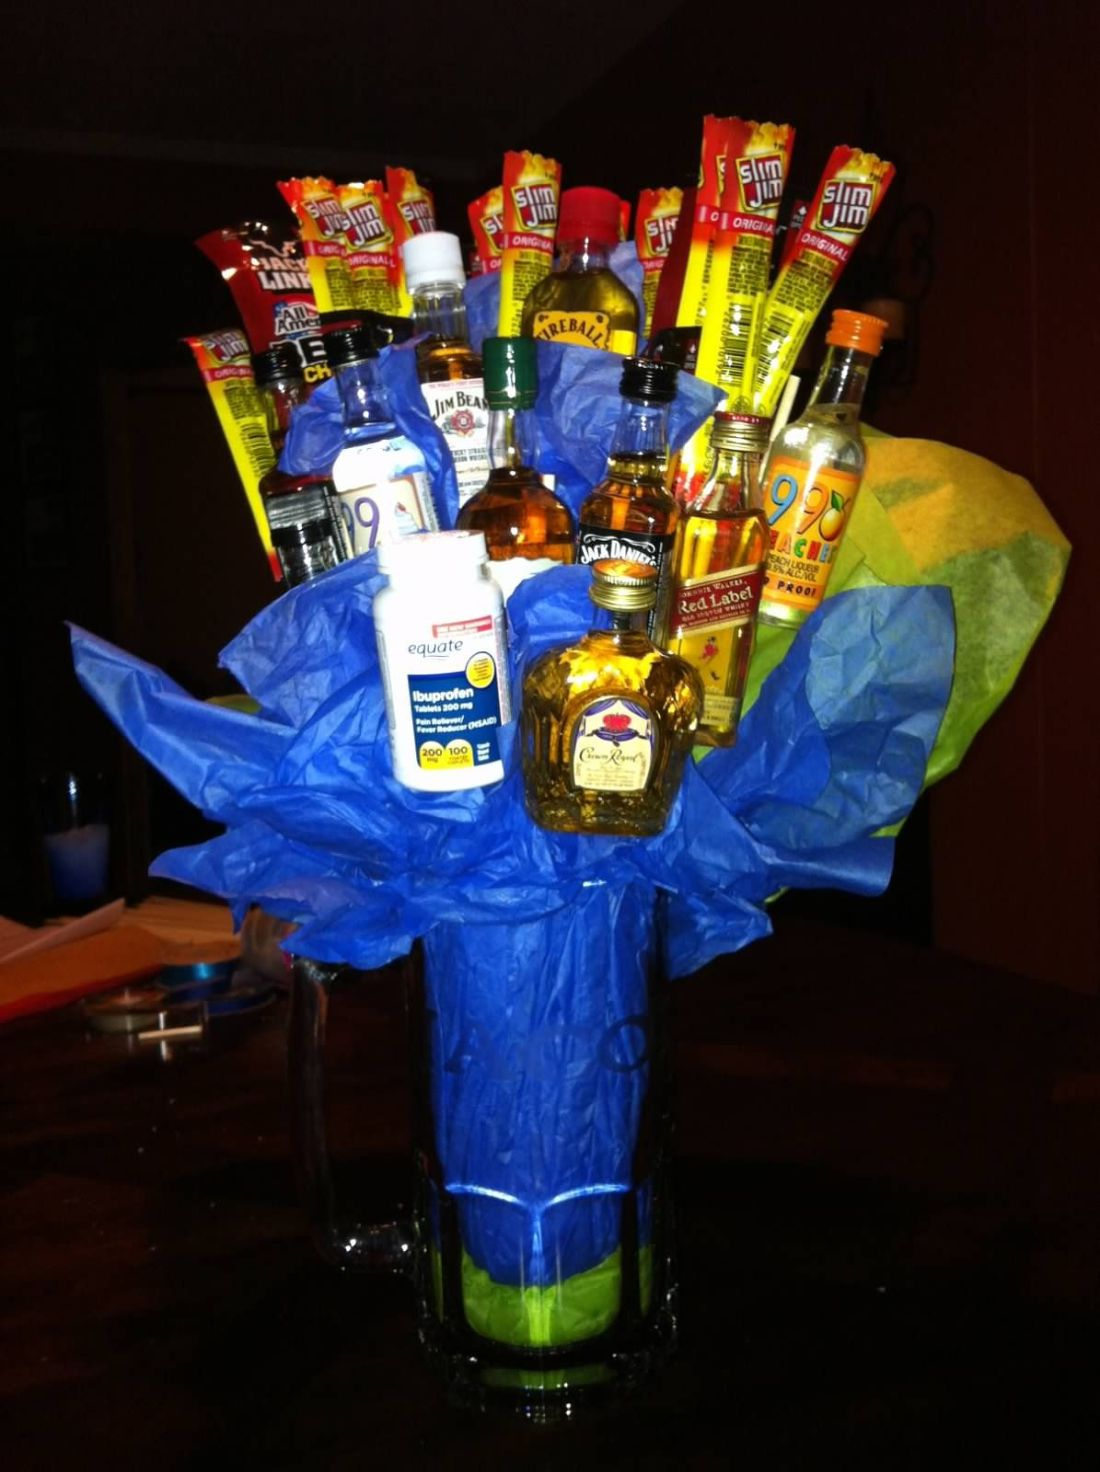 21st birthday gift for a male gift ideas pinterest